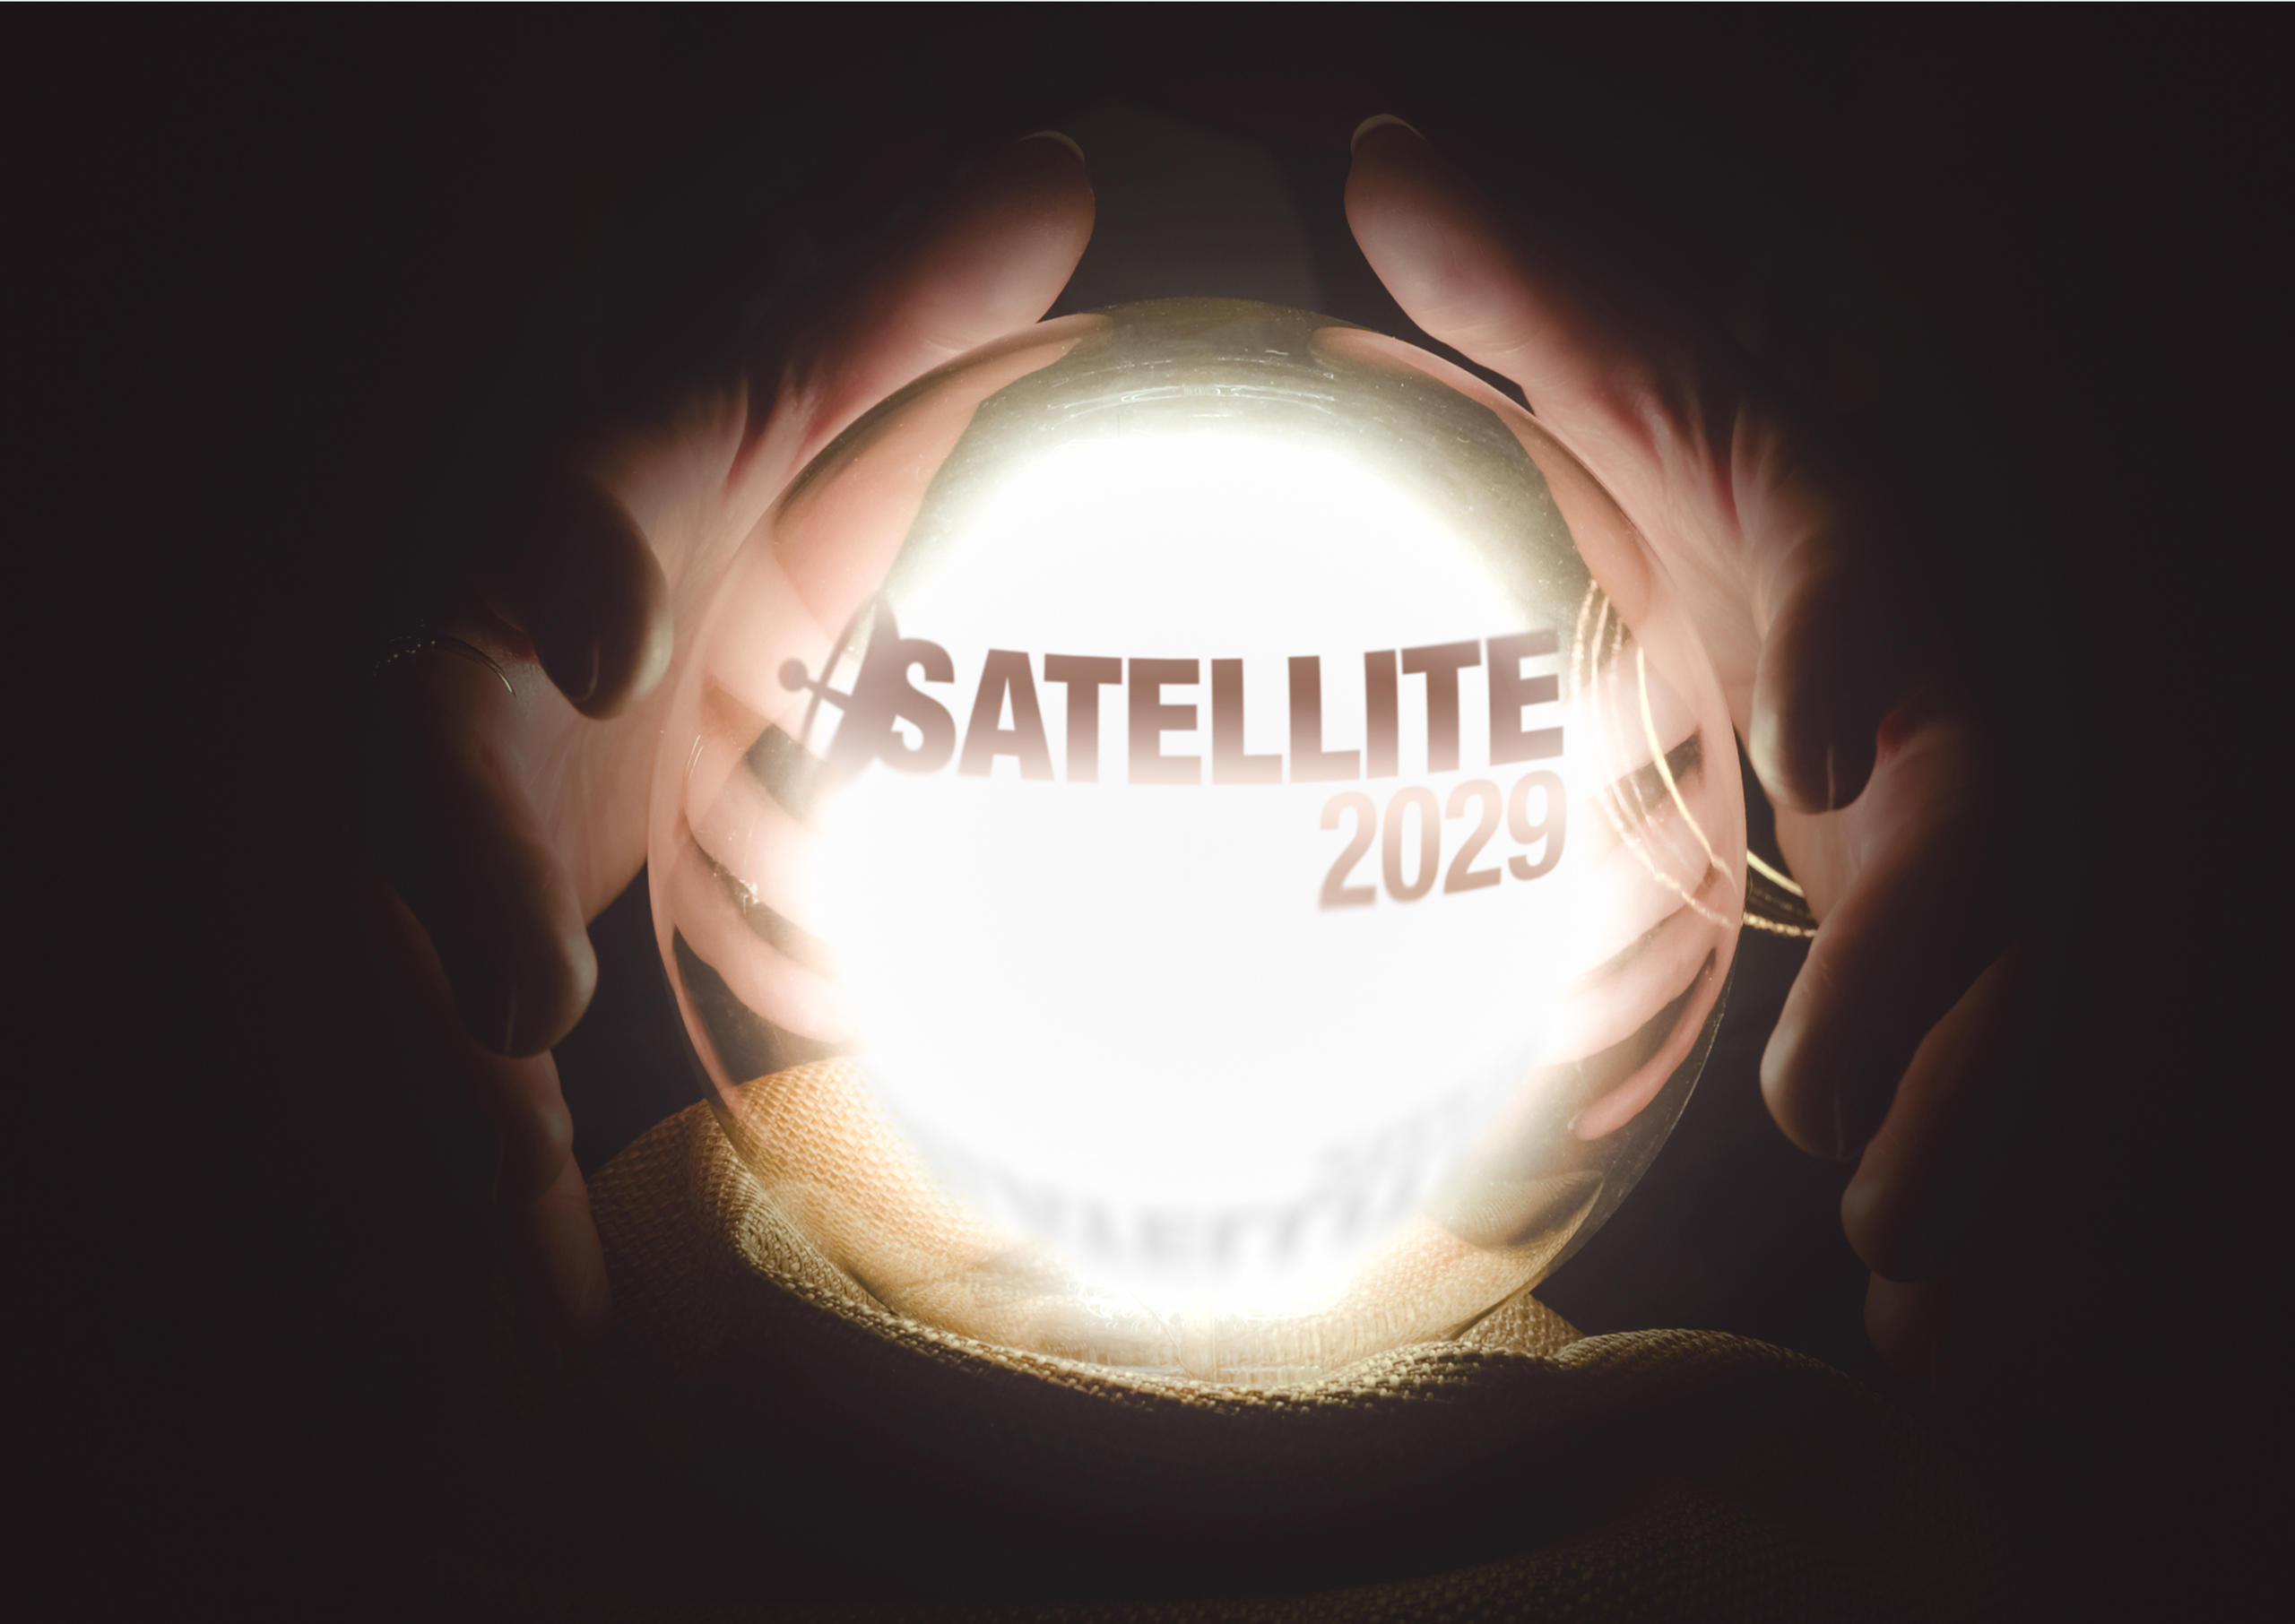 SATELLITE 2029: Satellite's Women Predict the Future